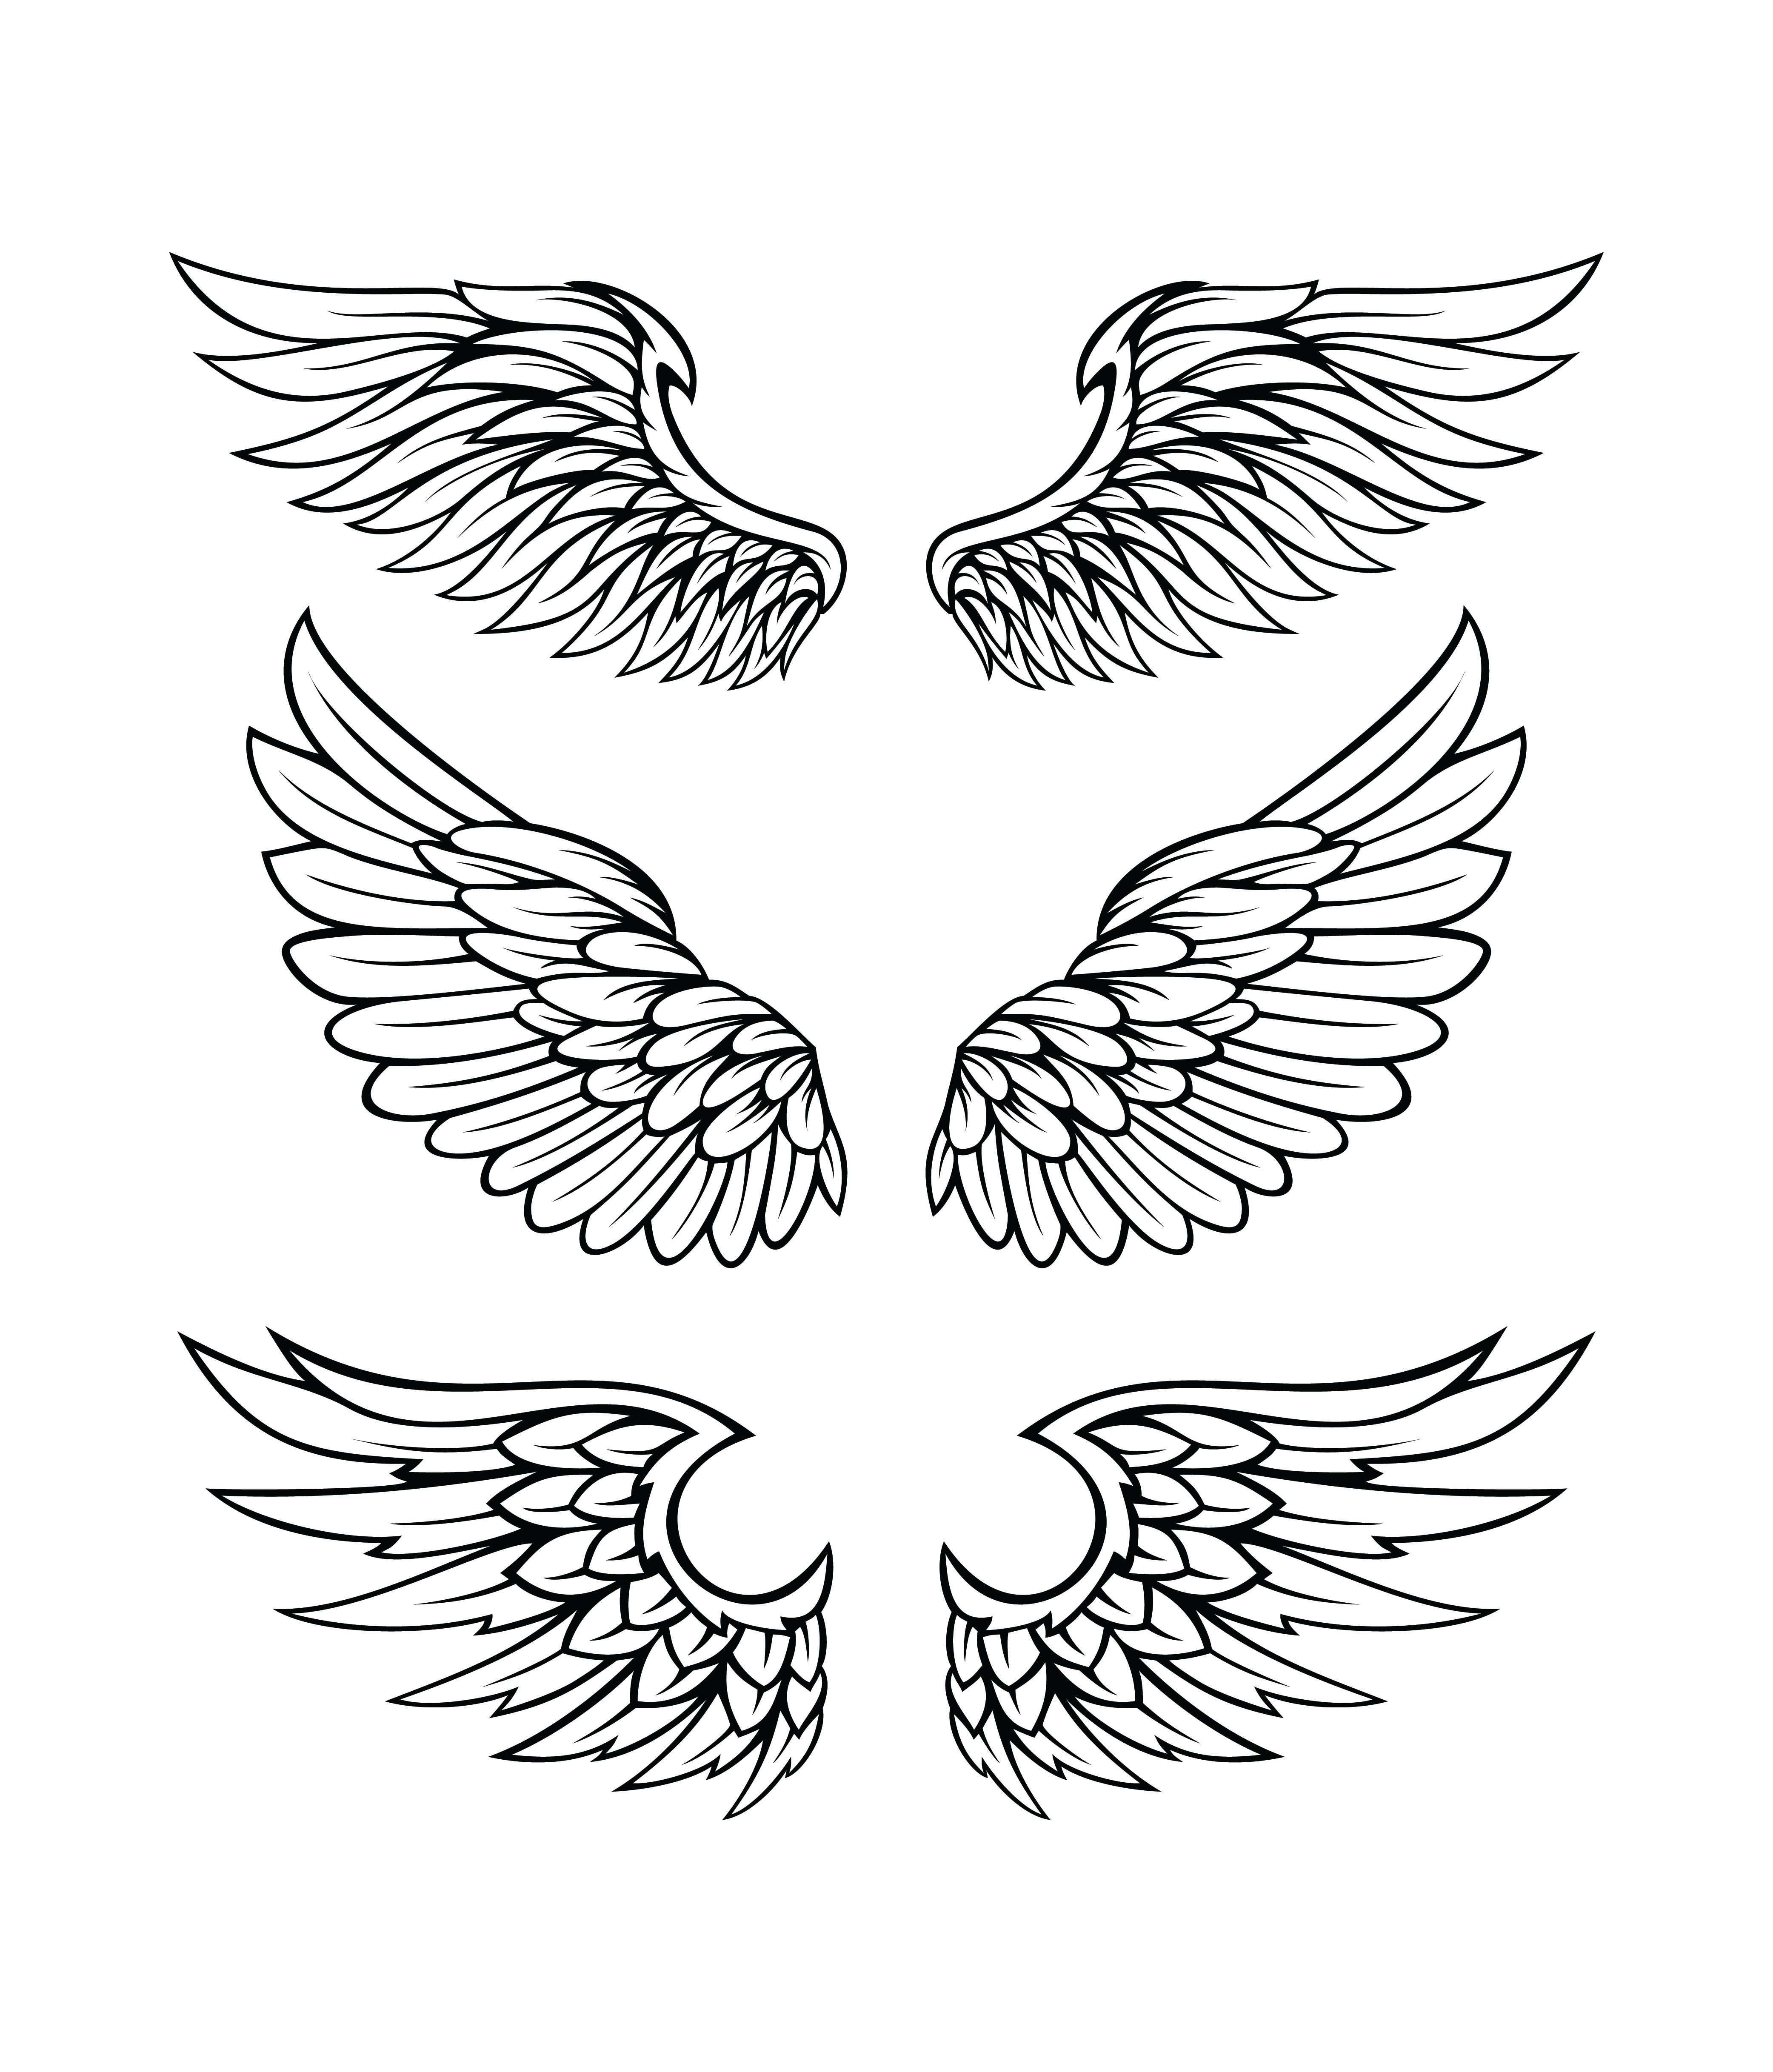 You Can Download For Personal Use Click Image For More Details Required Eps File Zip Archive Wings Tattoo Tattoo Lettering Styles Eagle Wing Tattoos